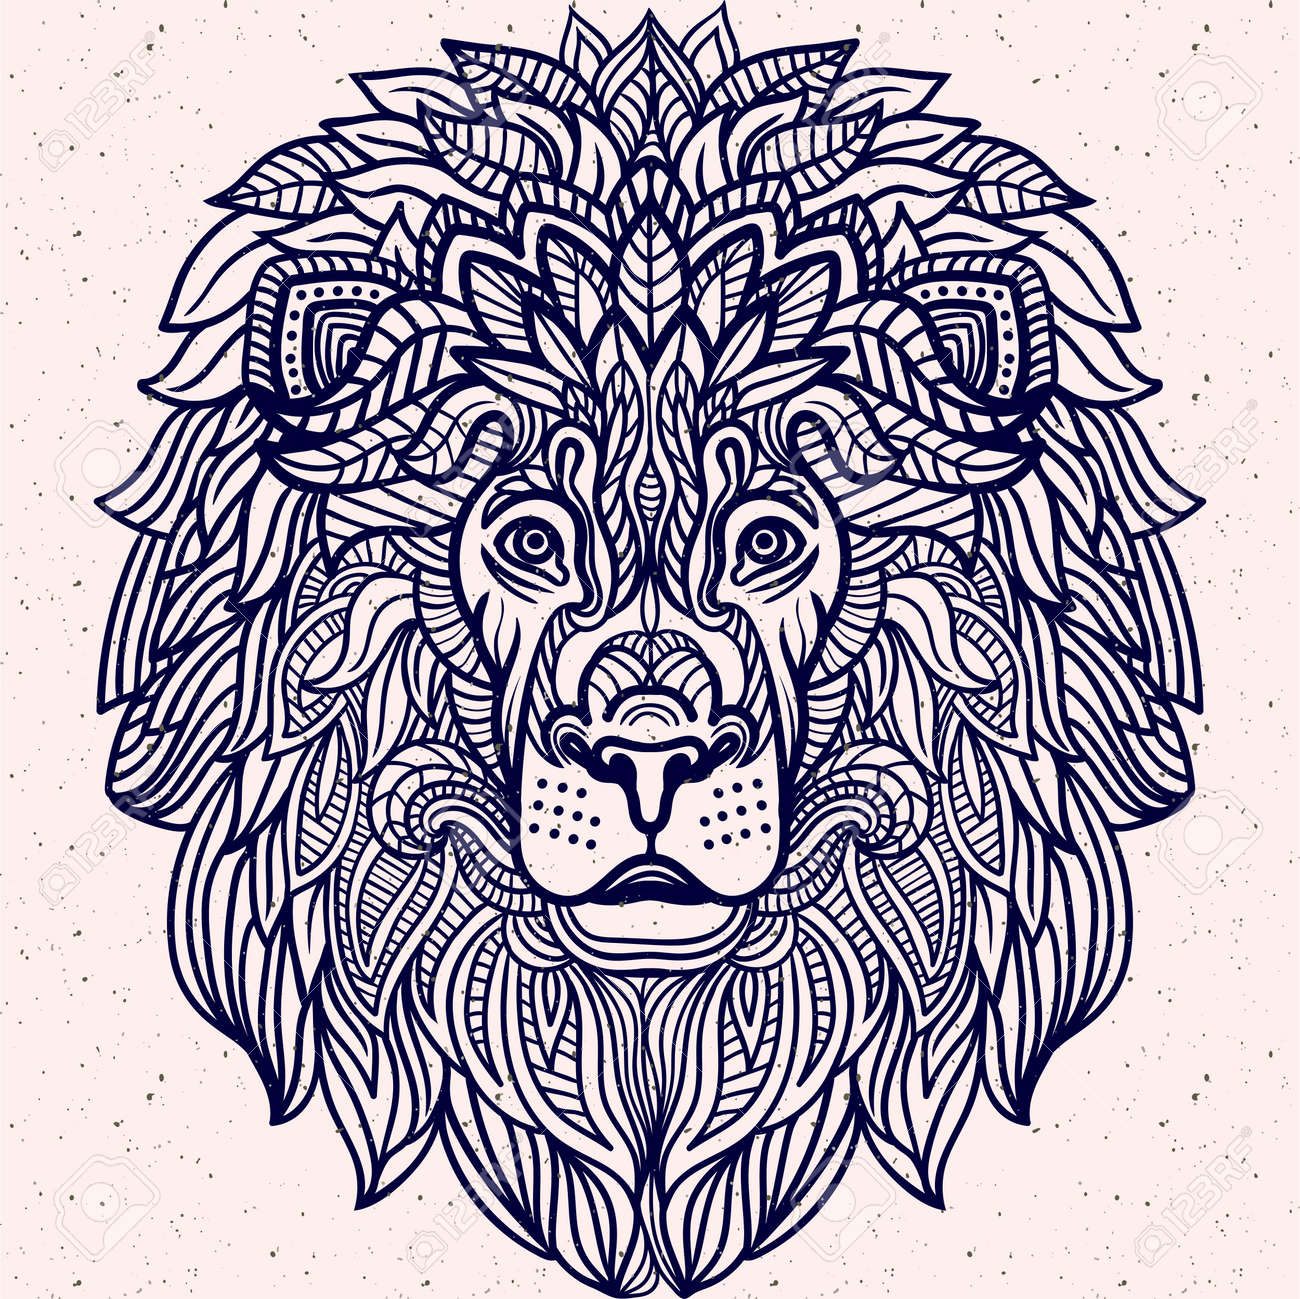 Detaillierte Lion In Aztekischer Filigrane Linie Art-Stil. Tattoo ...